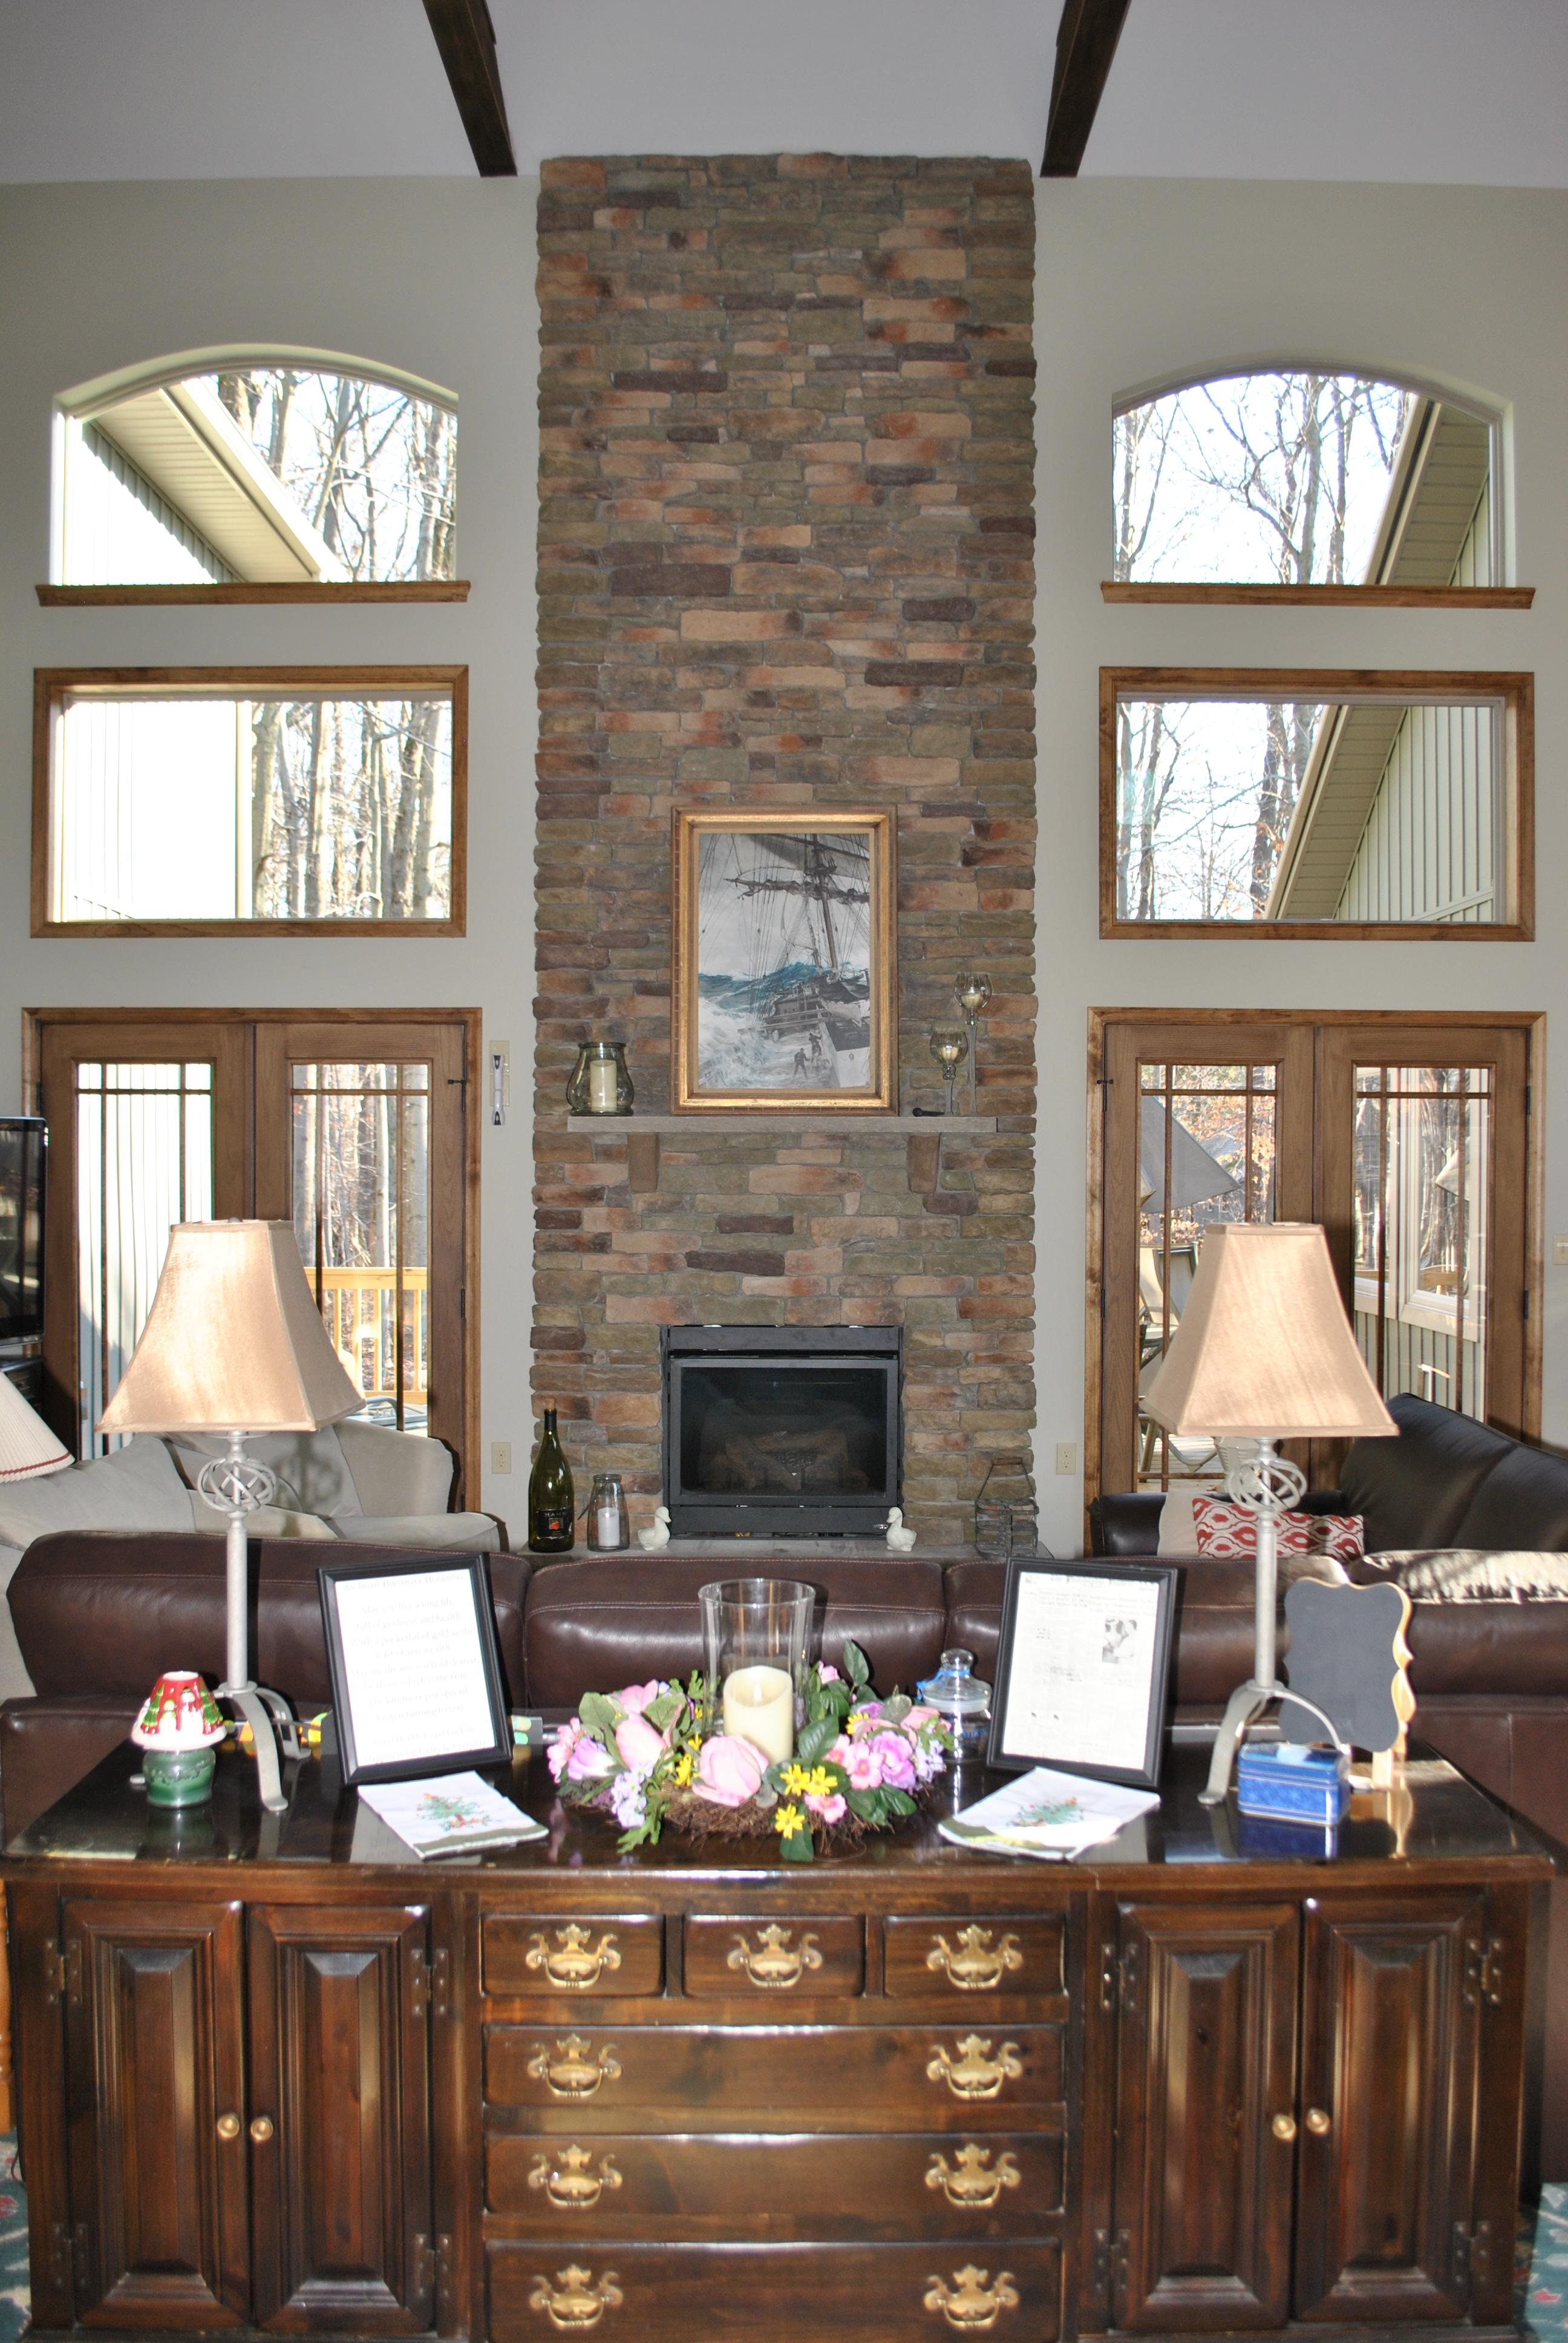 A Grand Fireplace for a Grand Home